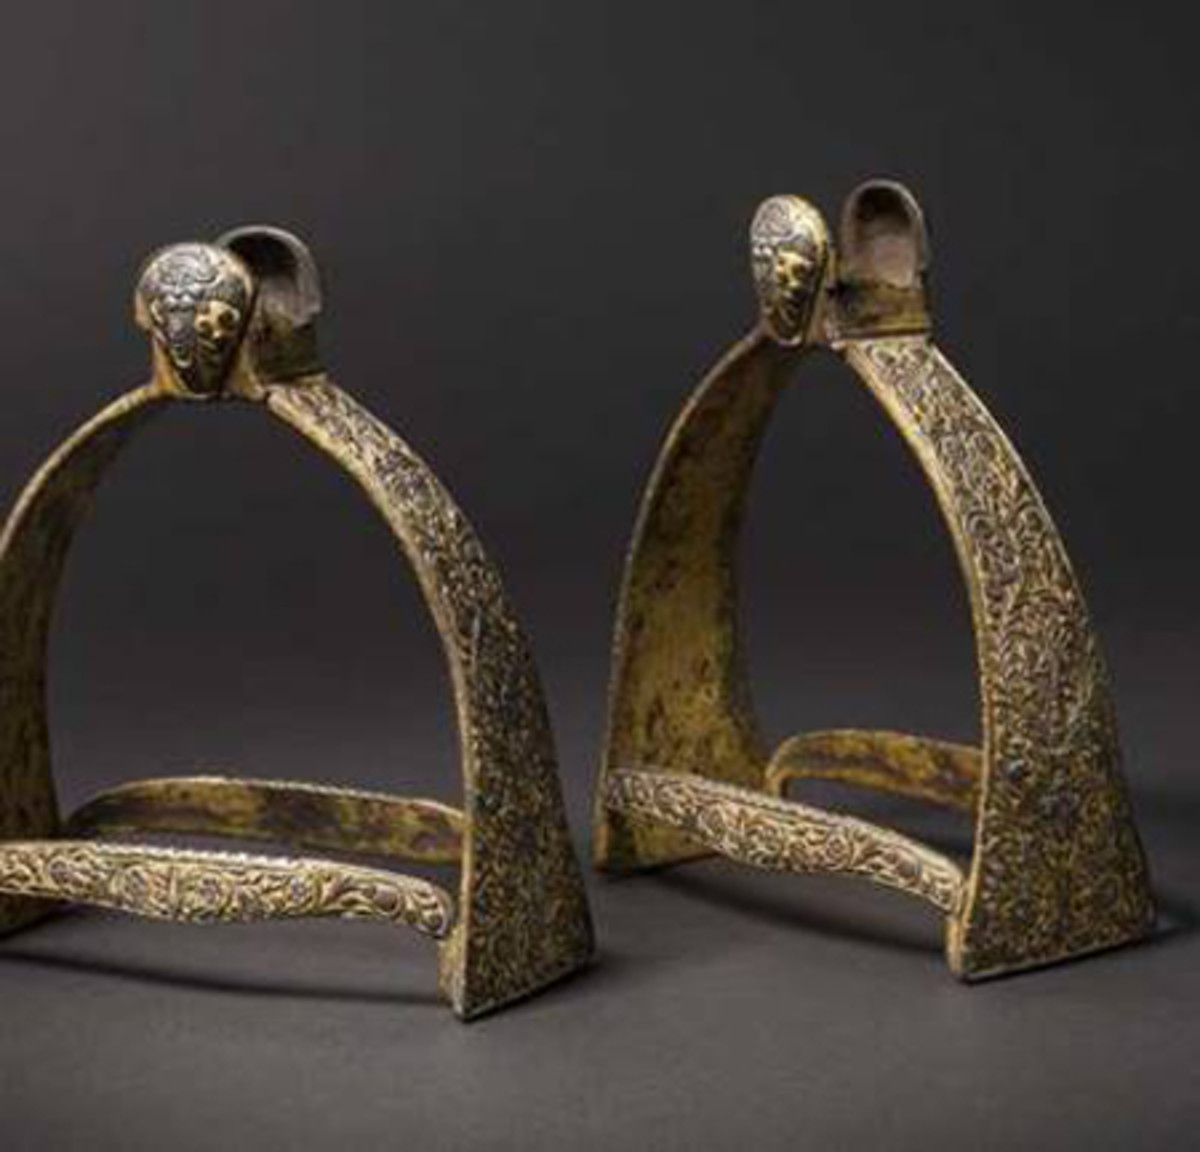 Chiselled and gilt stirrups by the celebrated Munich steel-chiseller, Caspar Spät, ca. 1650.